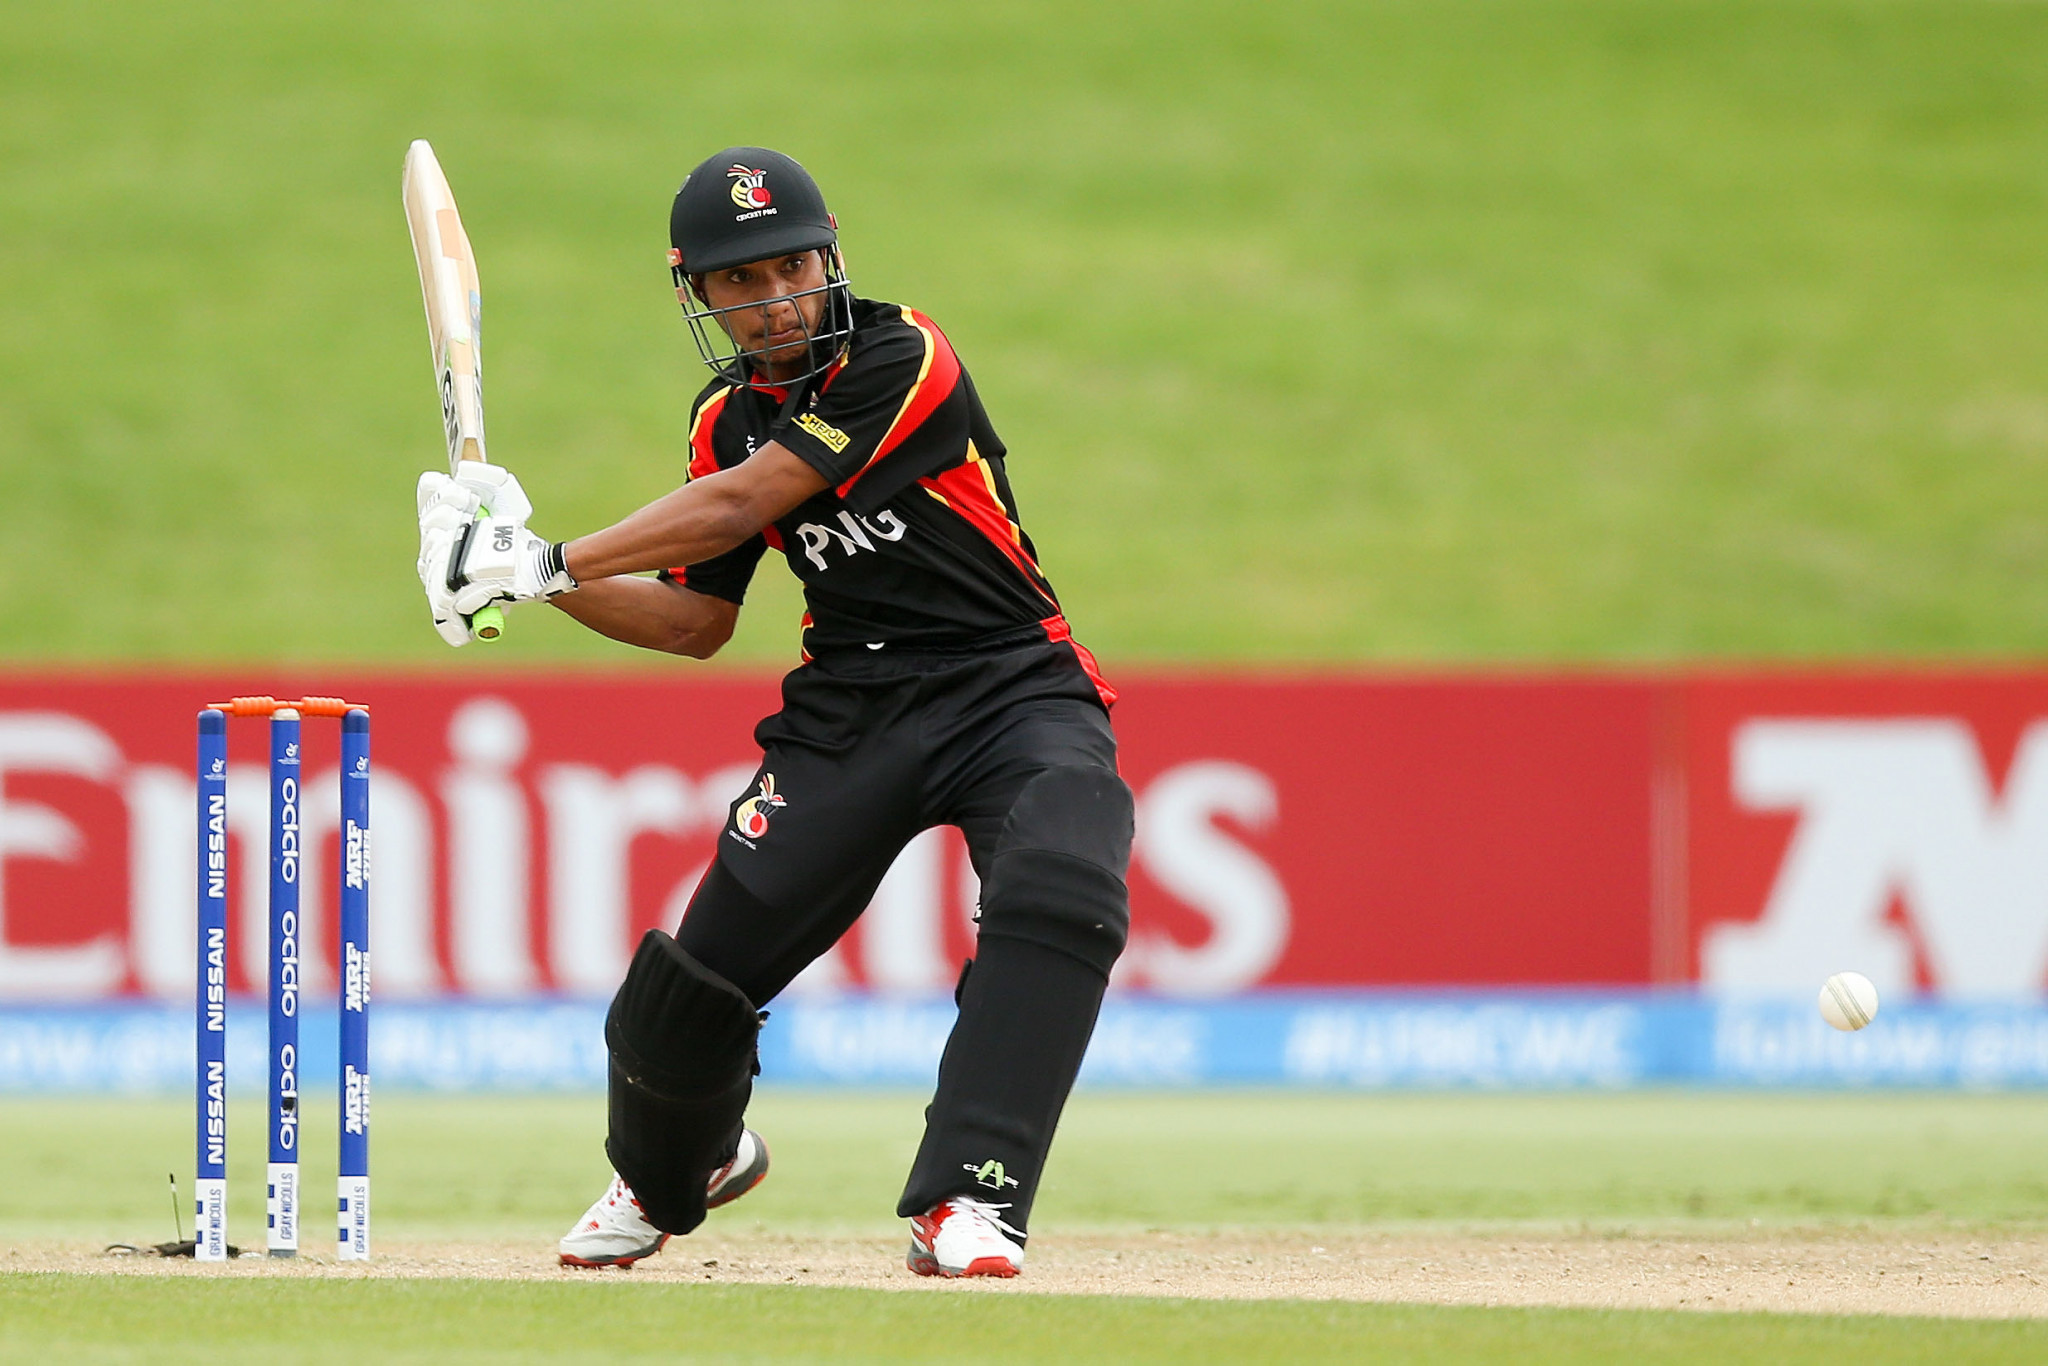 Papua New Guinea target Twenty20 progression on home soil at East Asia-Pacific regional finals